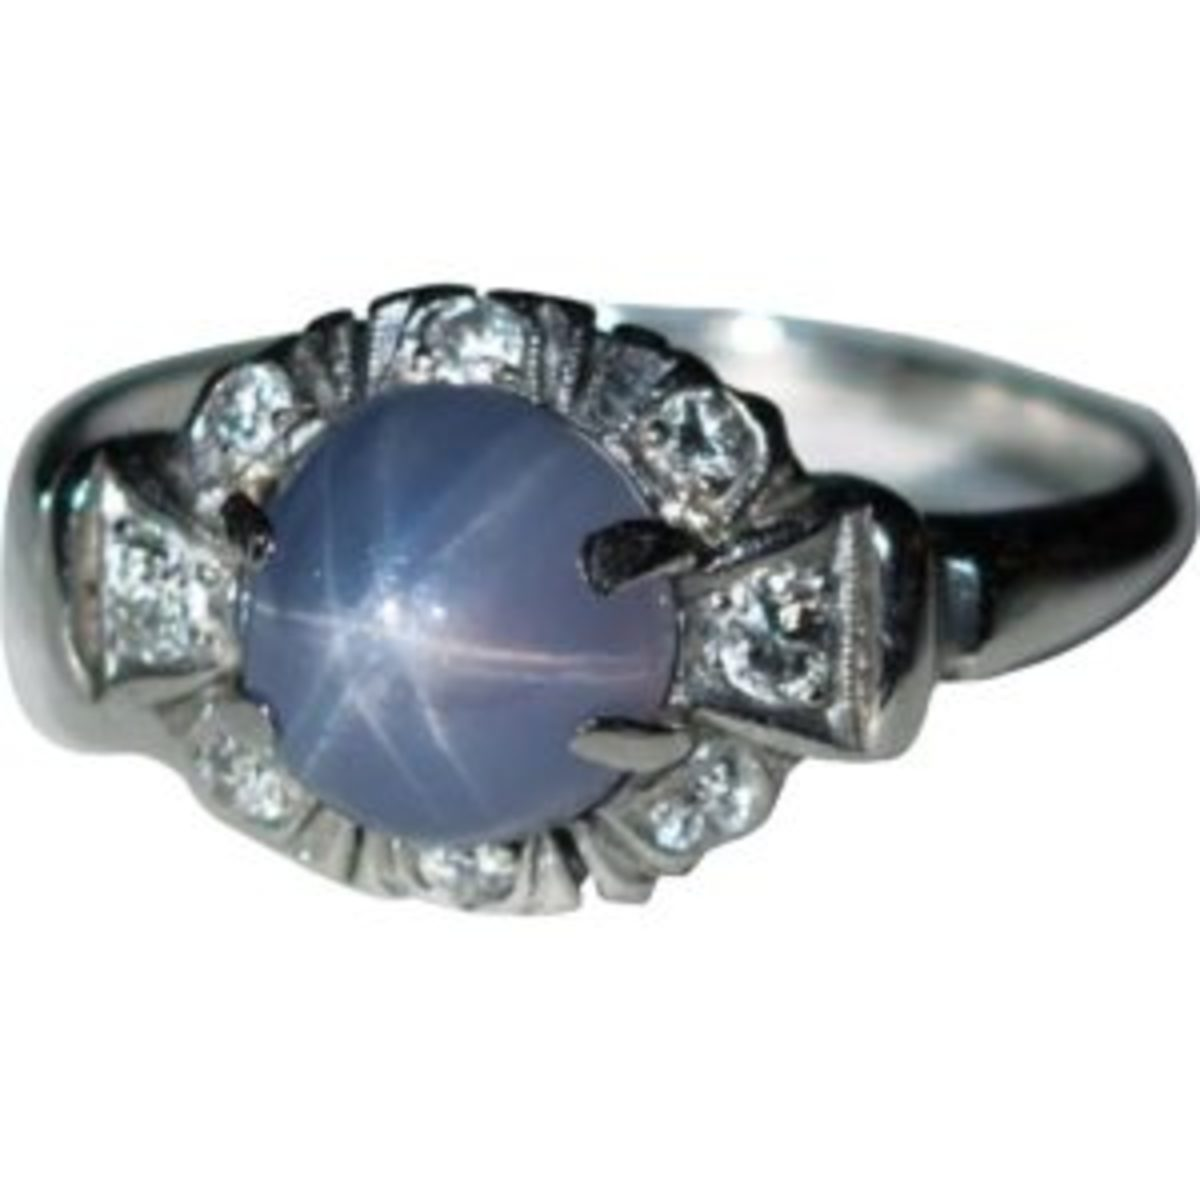 Star sapphire, diamond, platinum ring. Courtesy of Ruby Lane